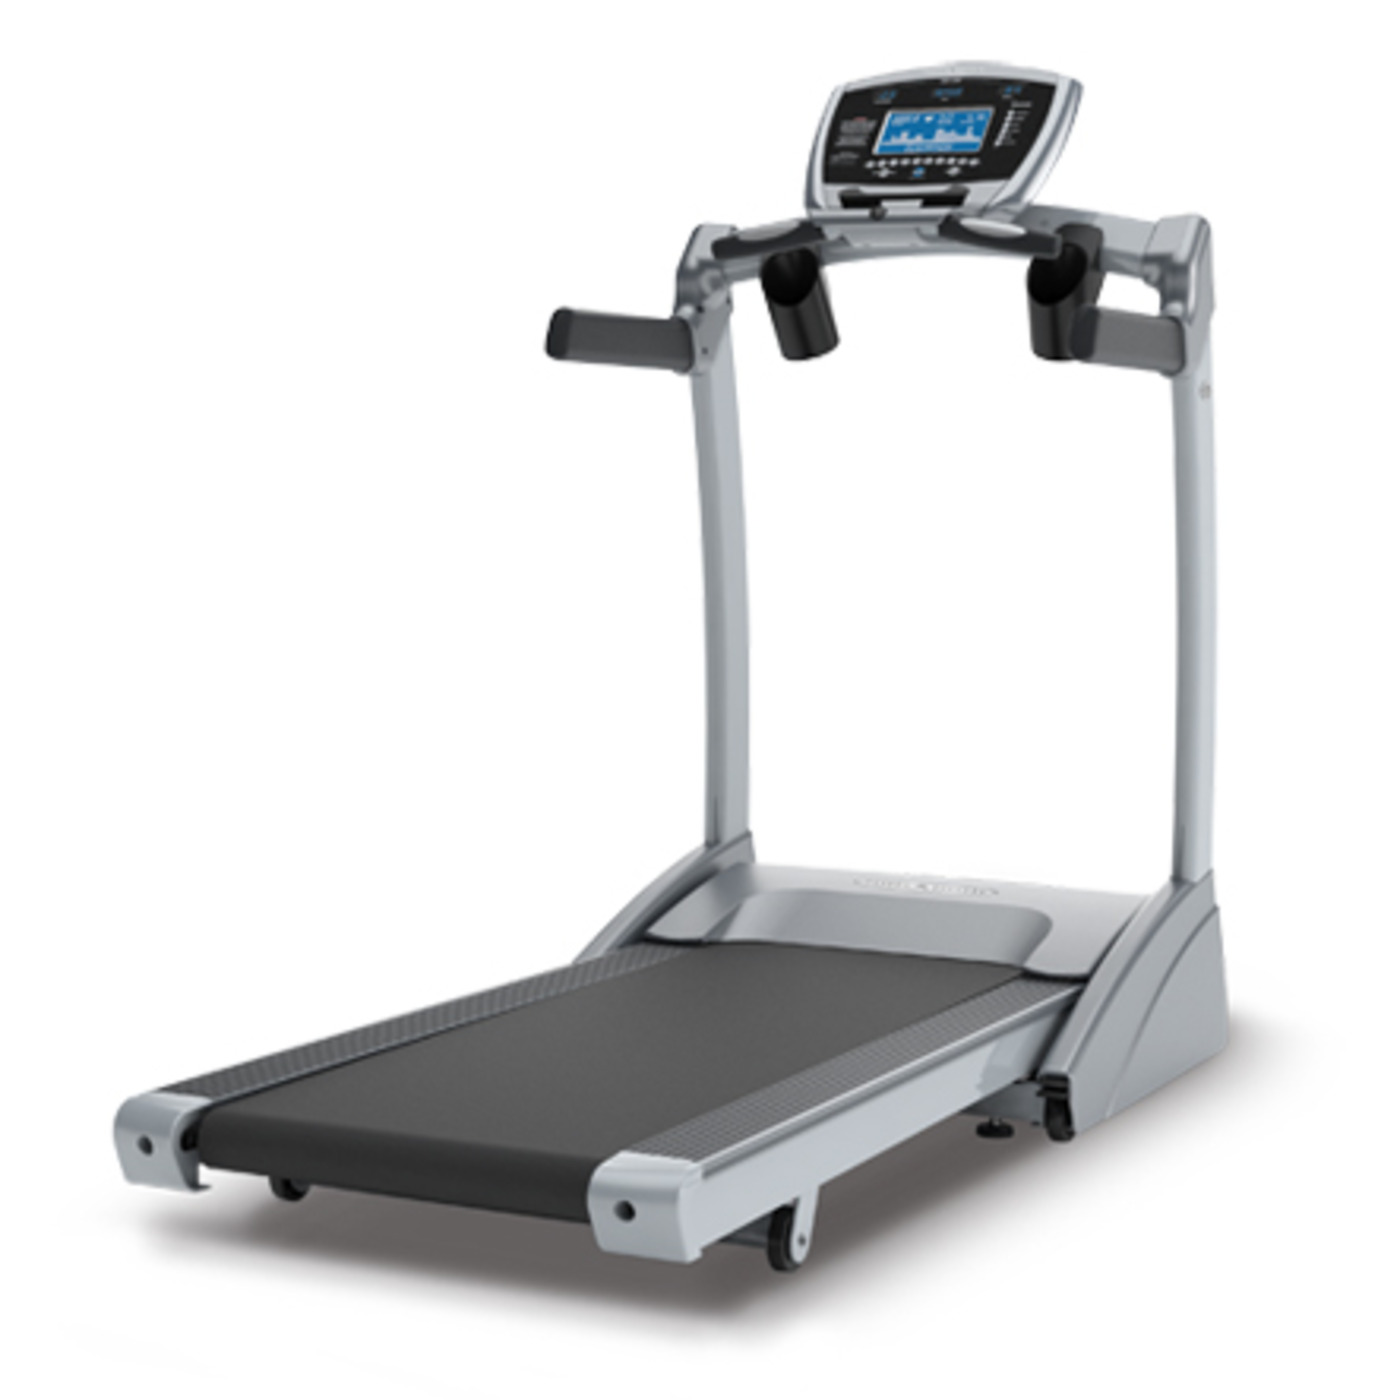 T9250 Treadmill (with New Simple